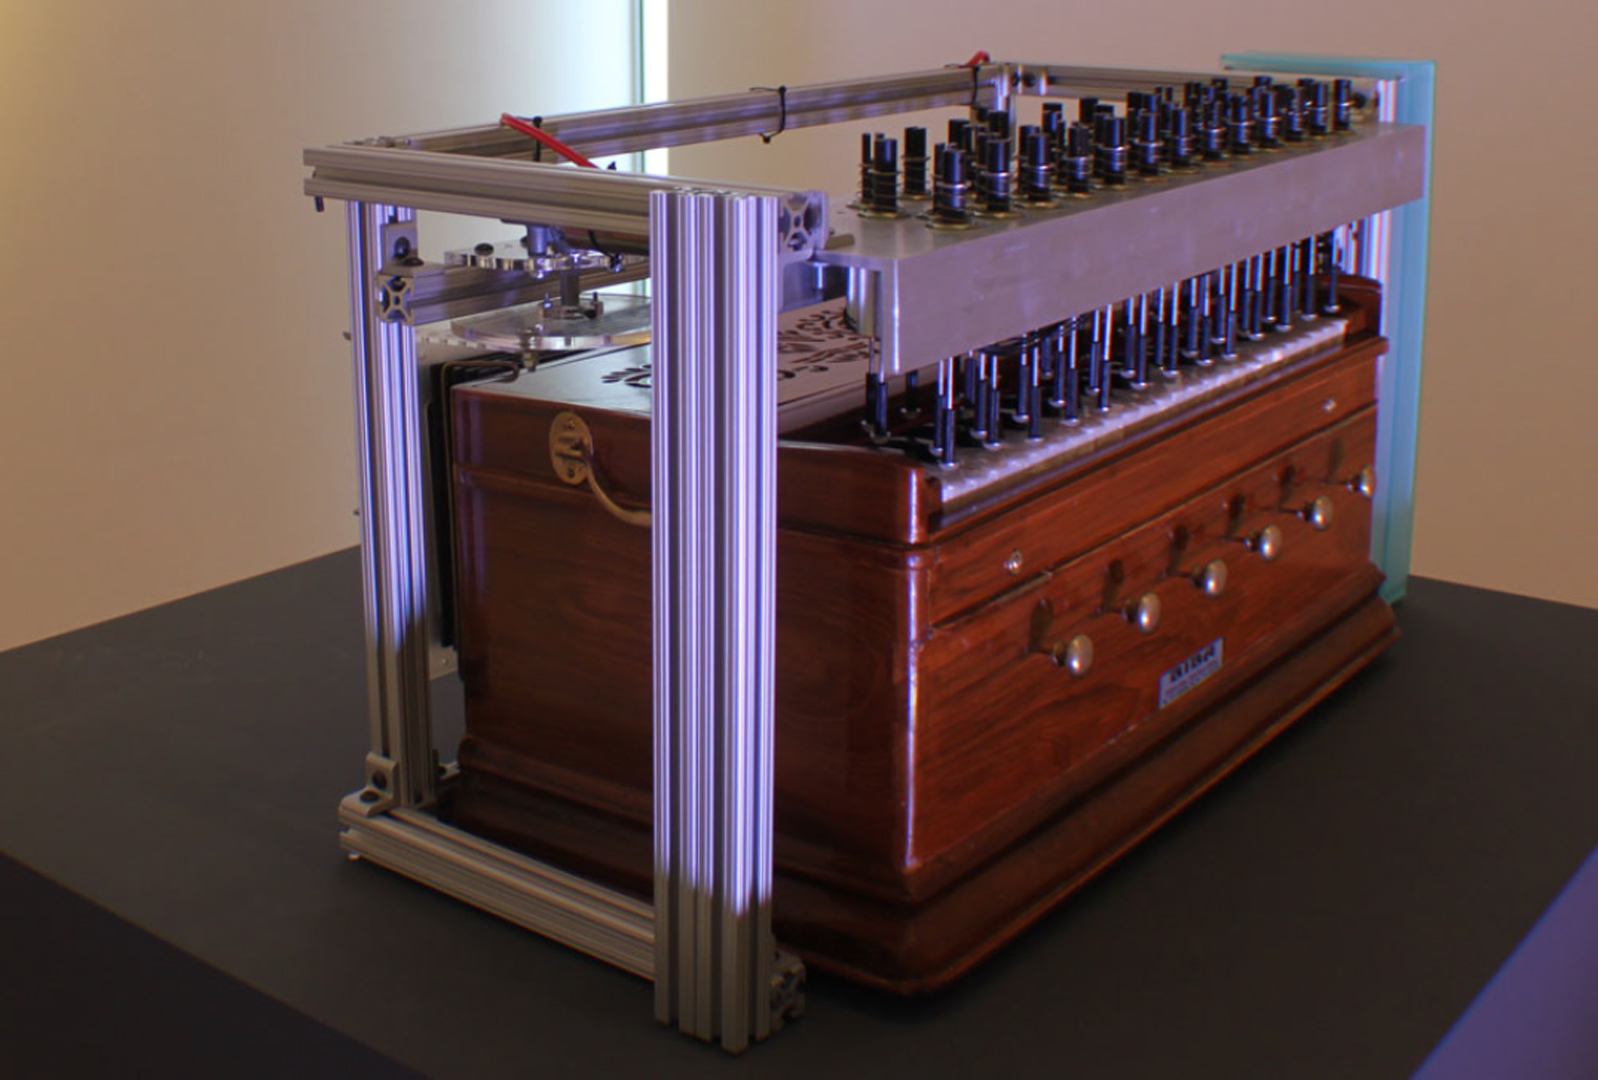 ©ISEA2016: 22nd International Symposium on Electronic Art, Jim Murphy, Dale A. Carnegie, and Ajay Kapur, Using Expressive Musical Robots: Working with an Ensemble of New Mechatronic Instruments